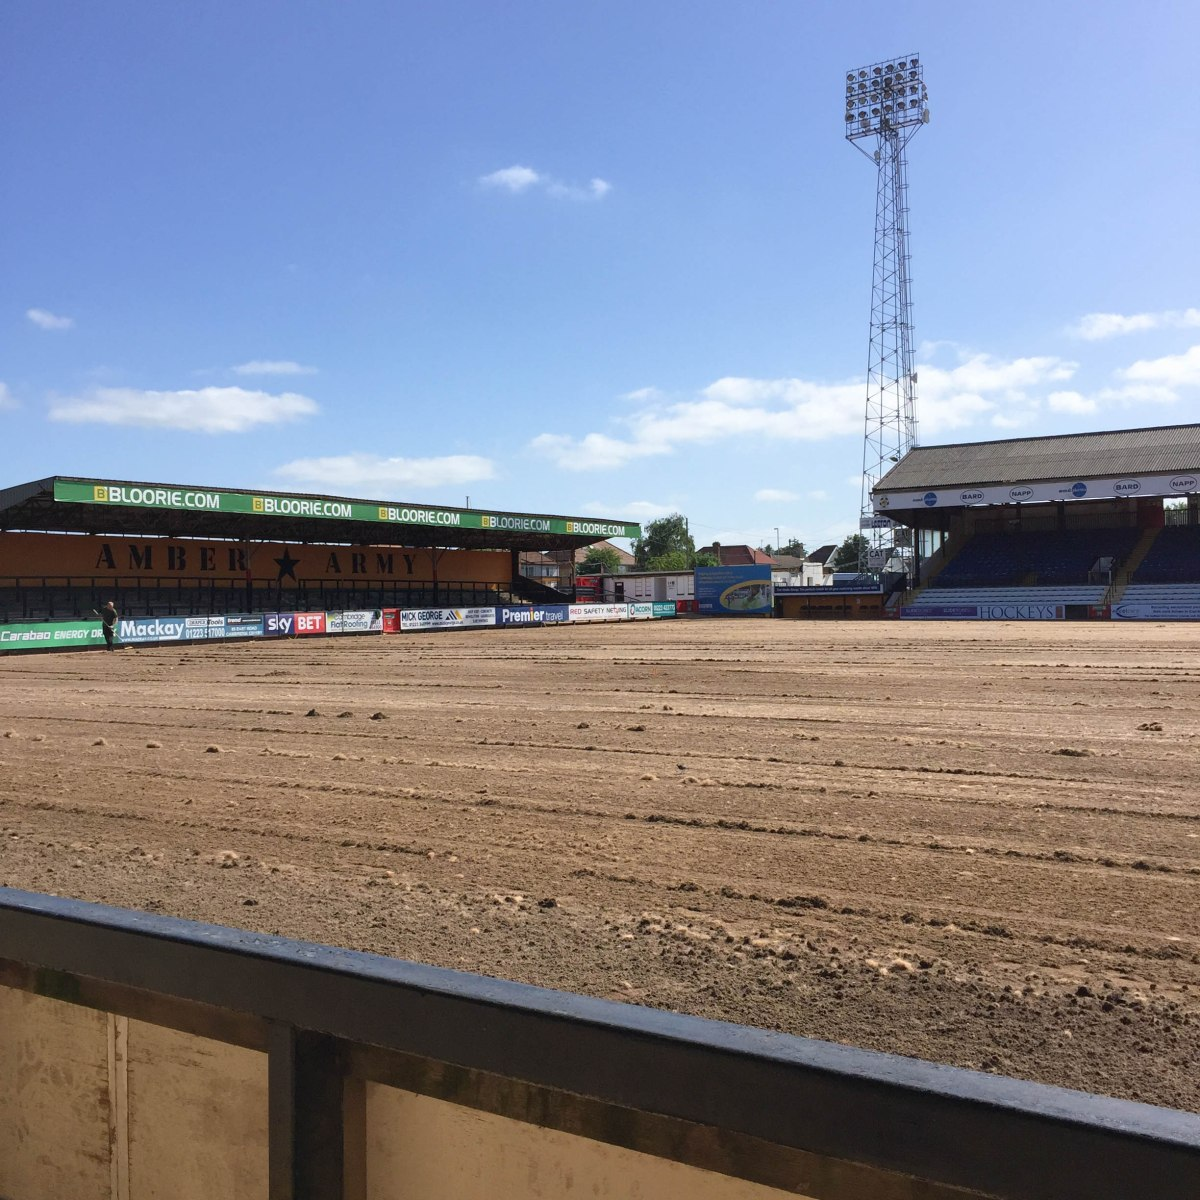 A photo of the pitch being reseeded